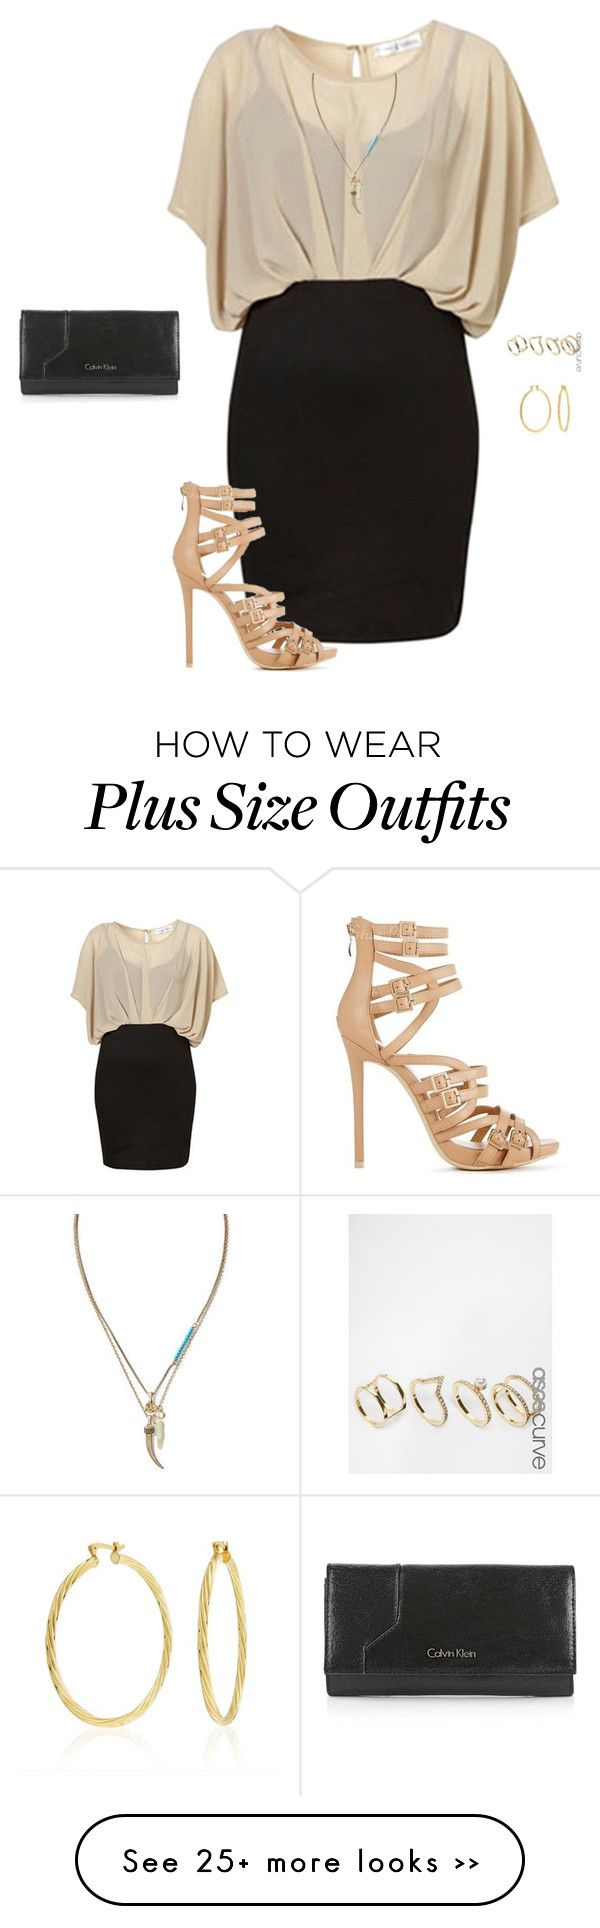 """""""Celebrating One Of Polyvore's Newest Features!"""" by hanakdudley on Polyvore"""